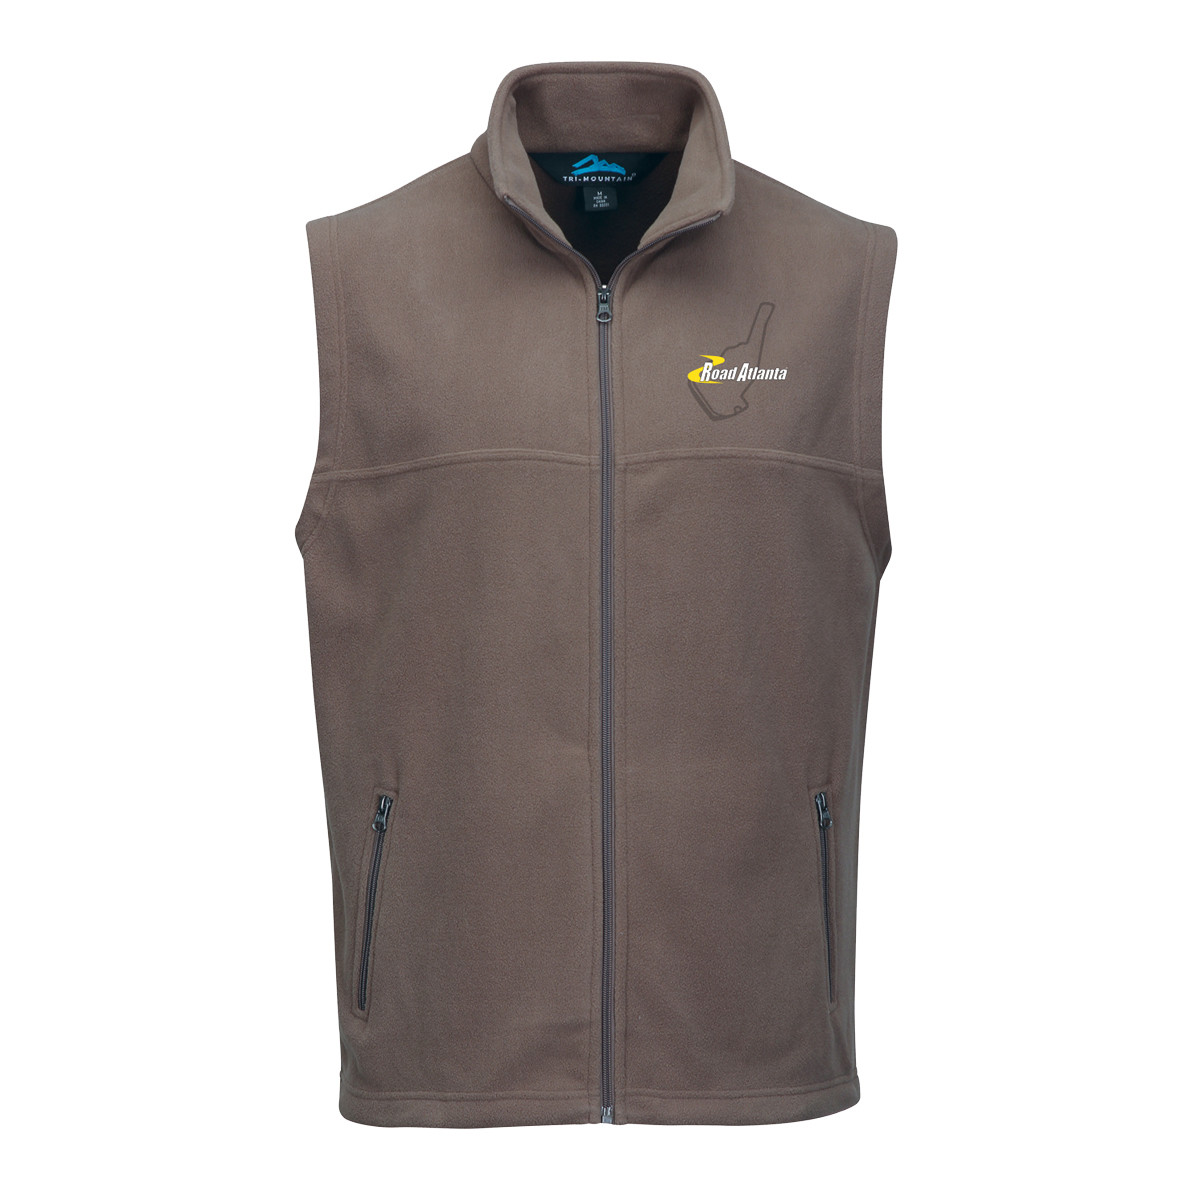 RA Expedition Vest - Tan